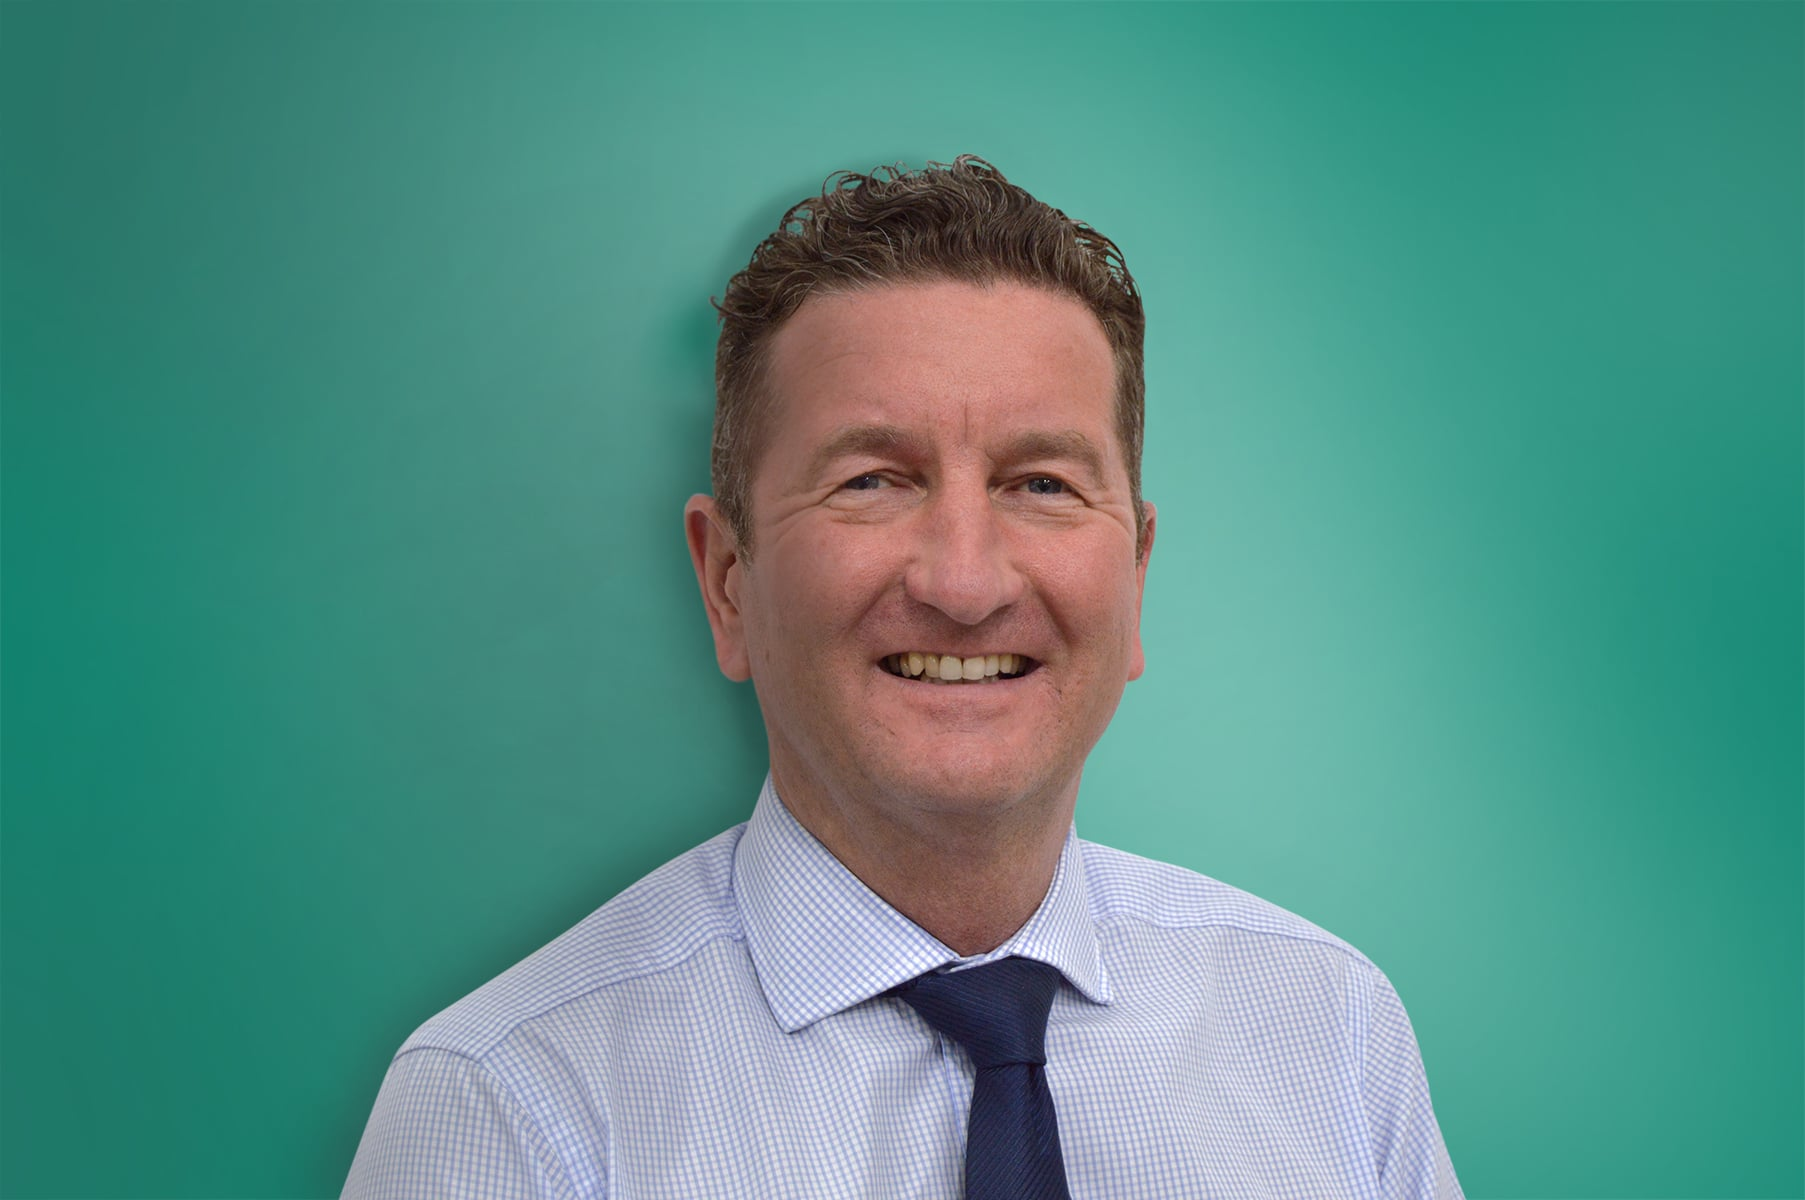 Managing Director - Robert Campbell